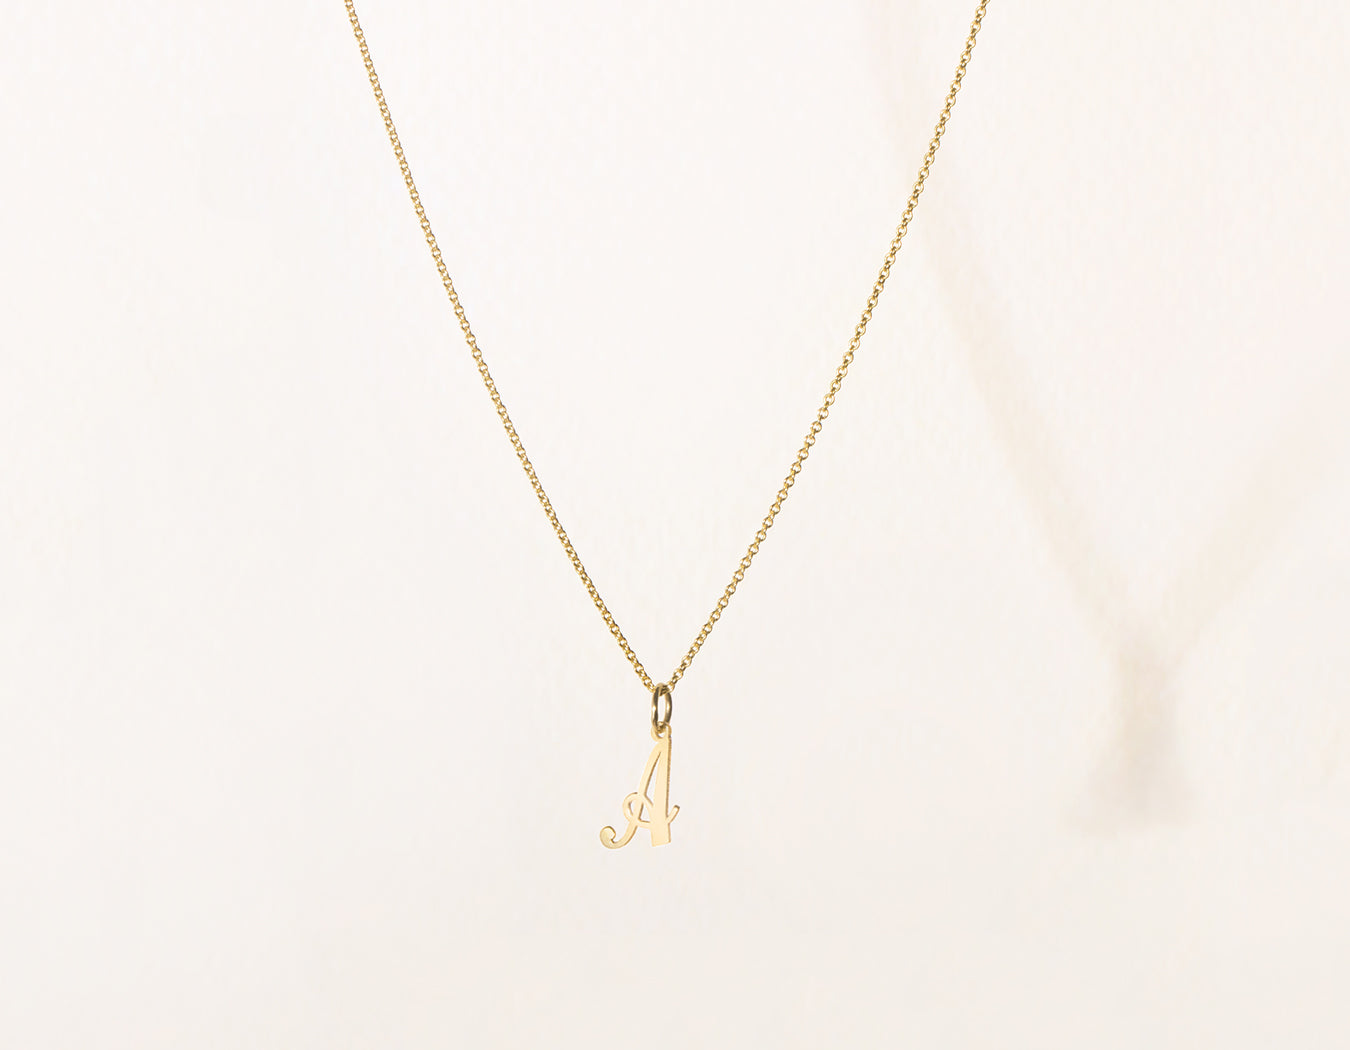 9fc5f132d vrai and Oro simple classic 14k Solid Gold Letter Pendant charm on oval  link chain,